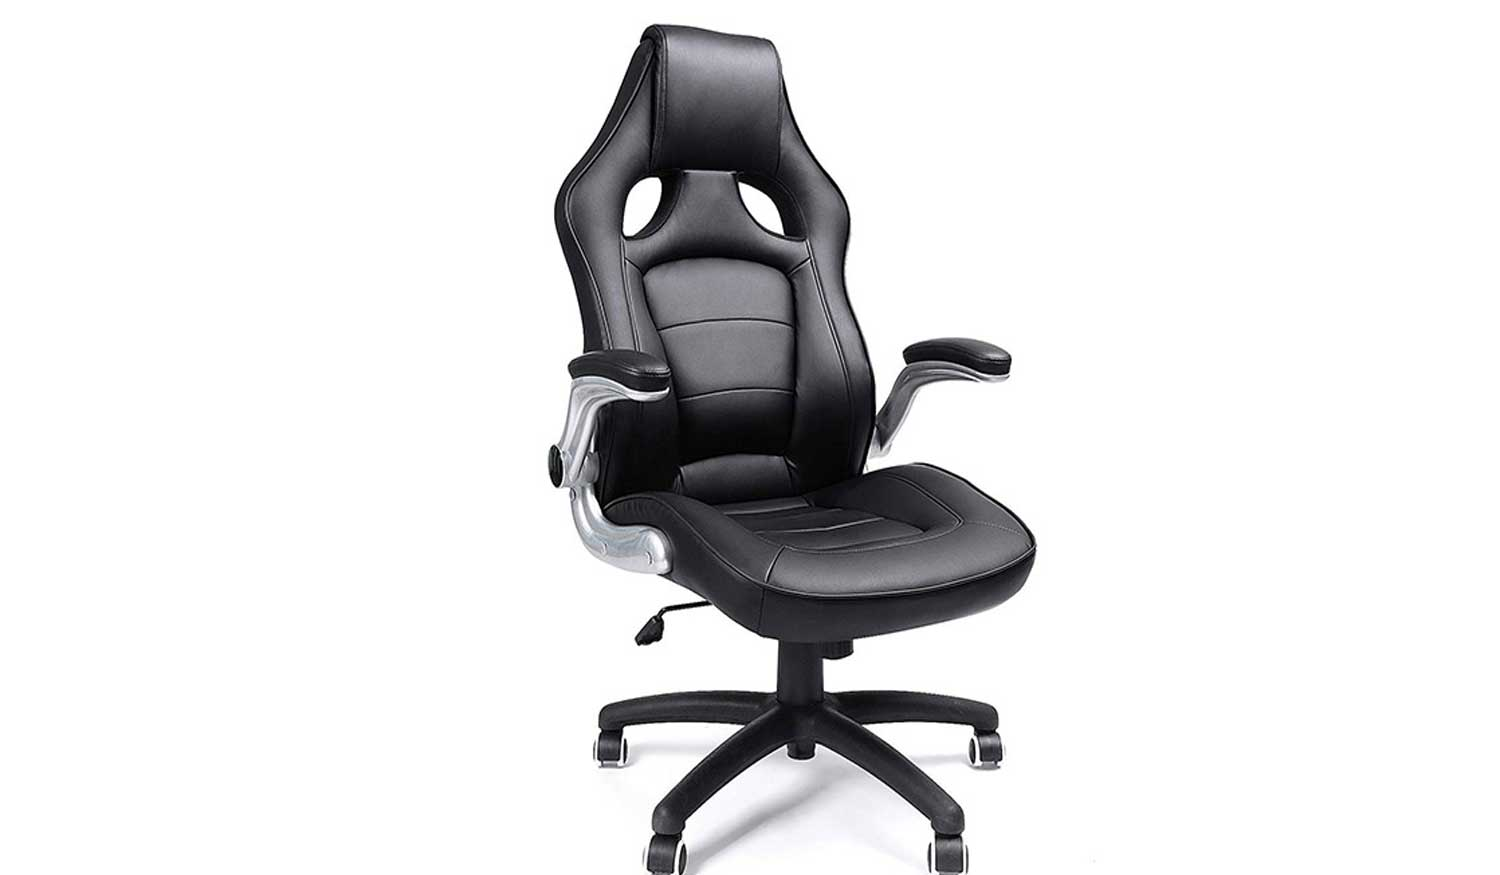 avis chaise gamer SongMics OBG62B